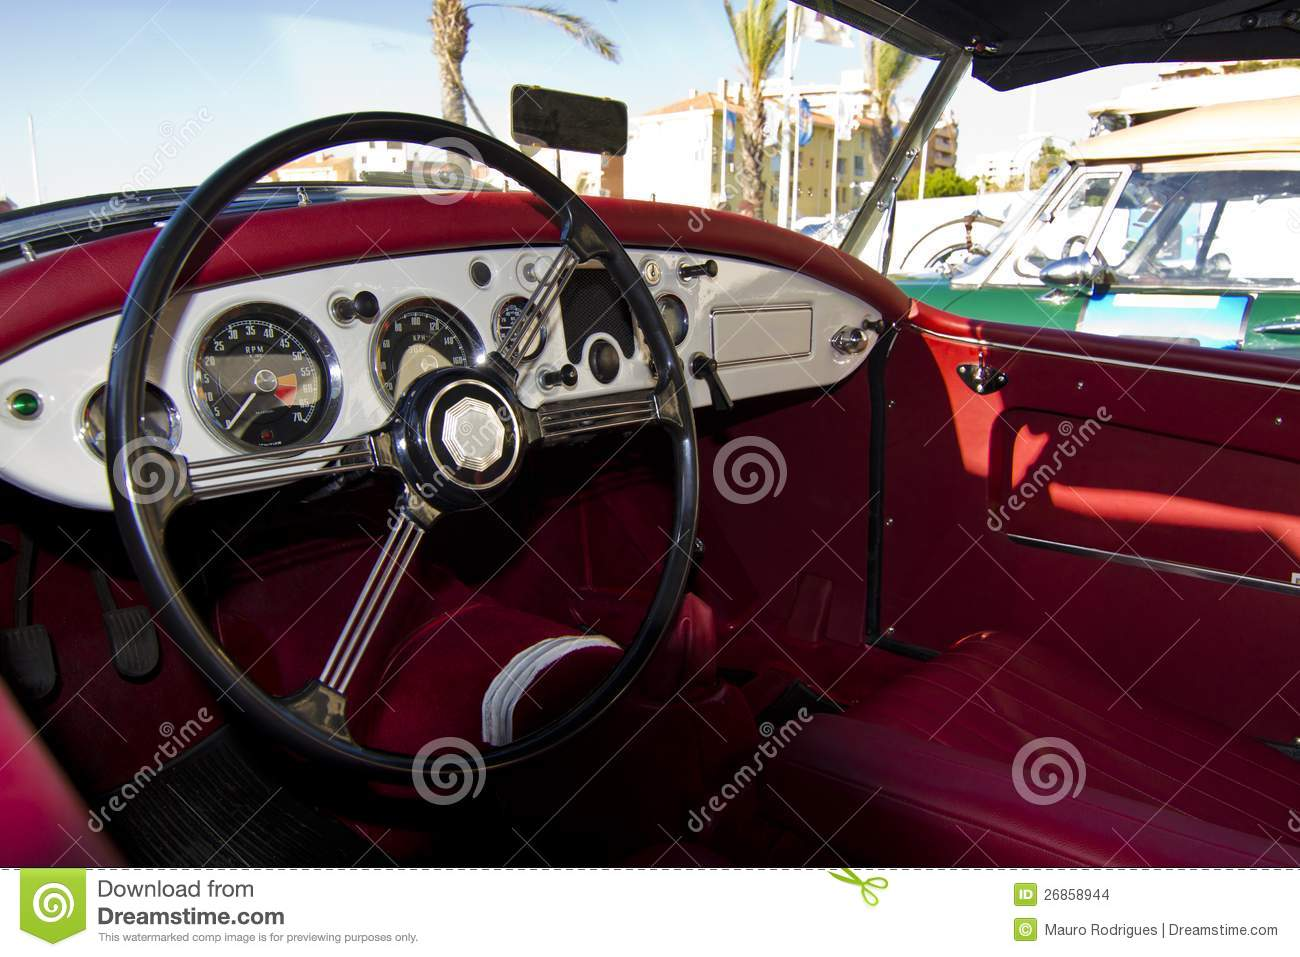 vintage car detail interior stock images image 26858944. Black Bedroom Furniture Sets. Home Design Ideas